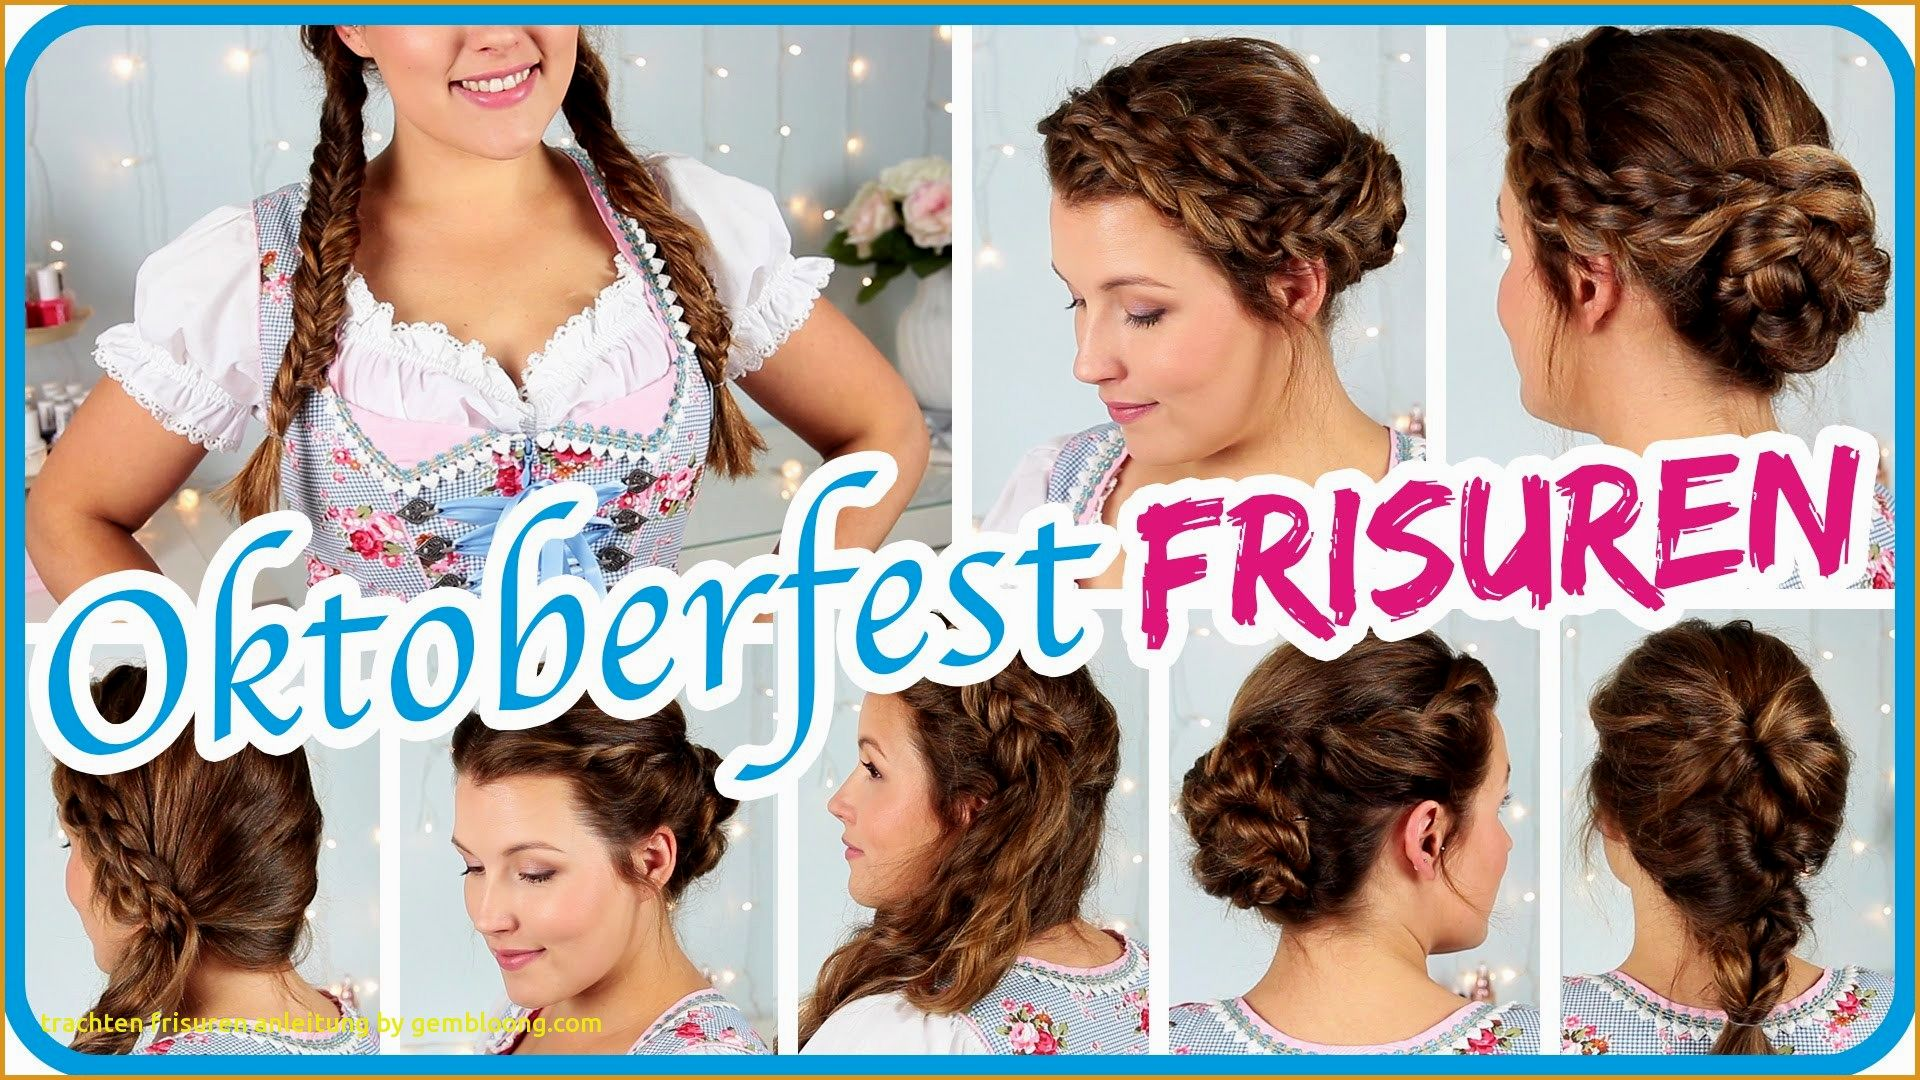 excellent hairstyles for dirndl plan-charming hairstyles for dirndl photography